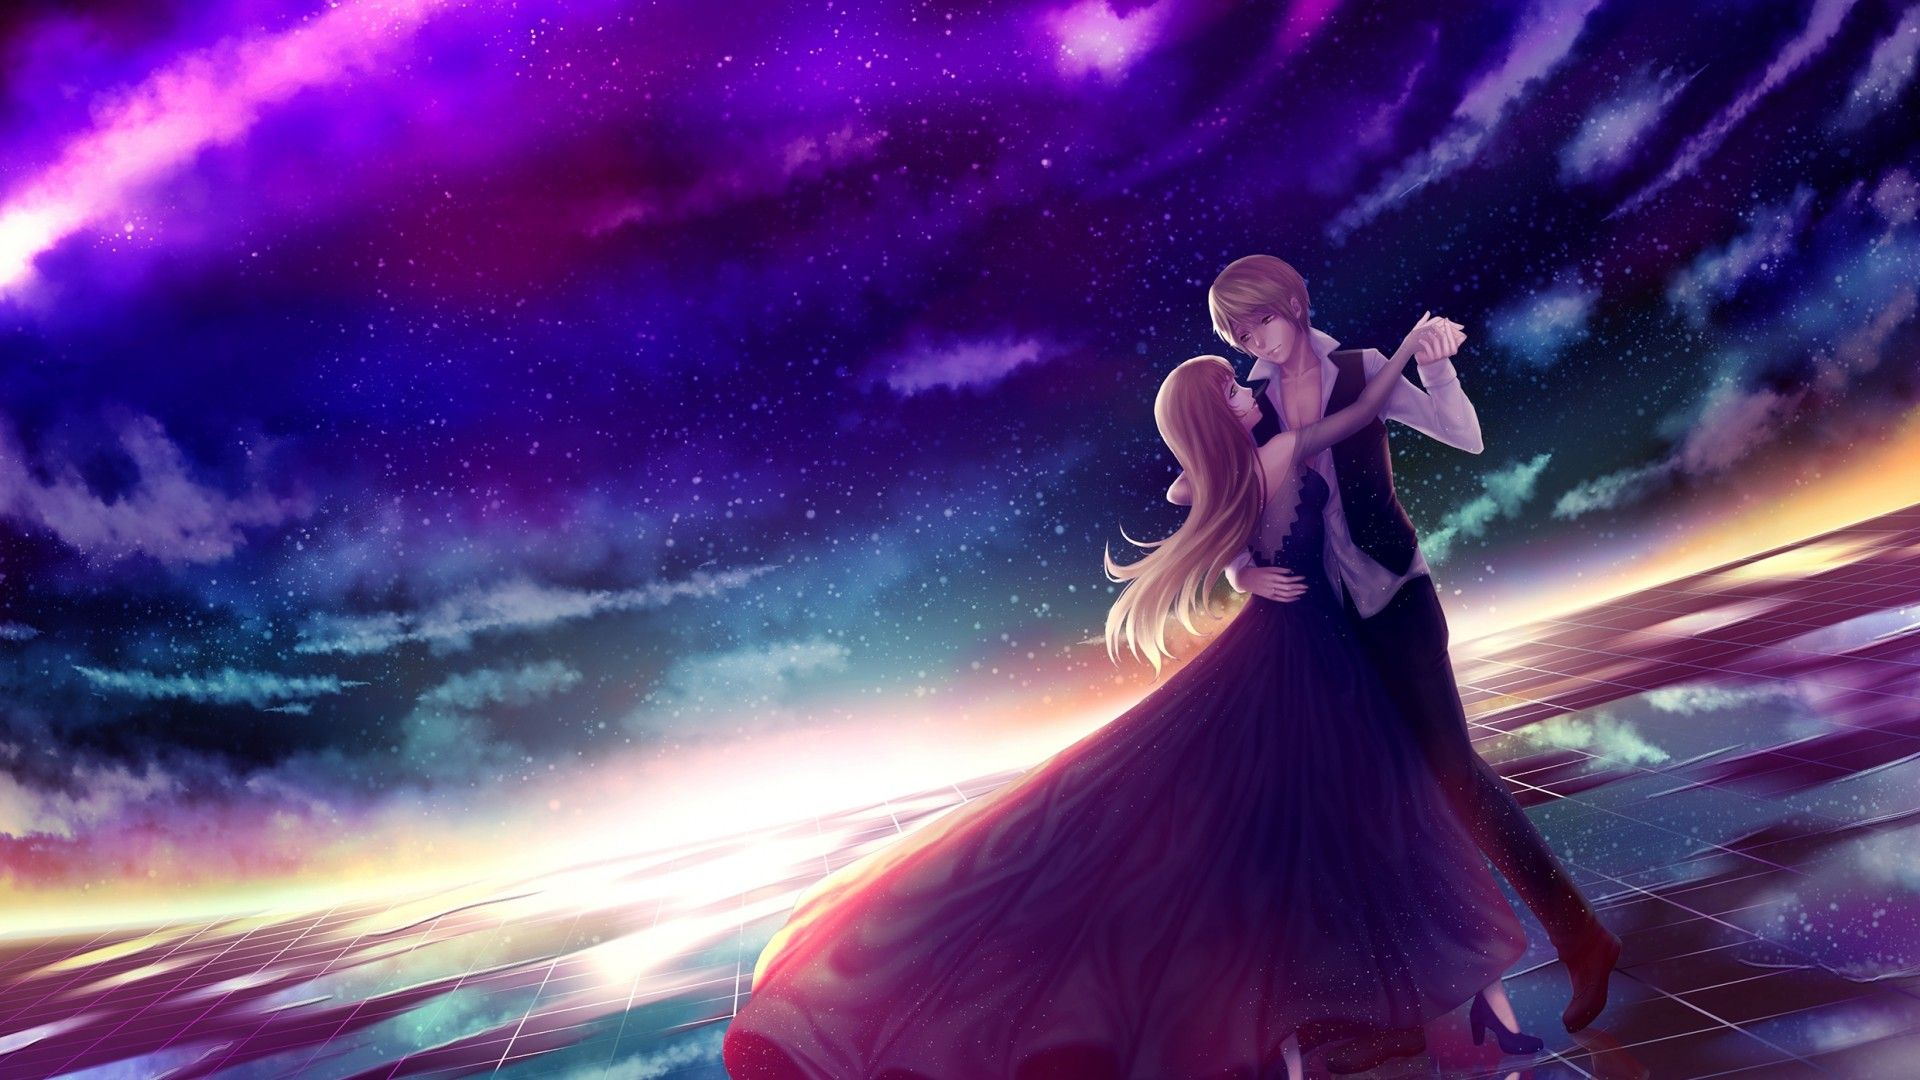 1920x1080 Download 1920x1080 Anime Couple, Dancing, Stars, Sky, Romance, Dress ...